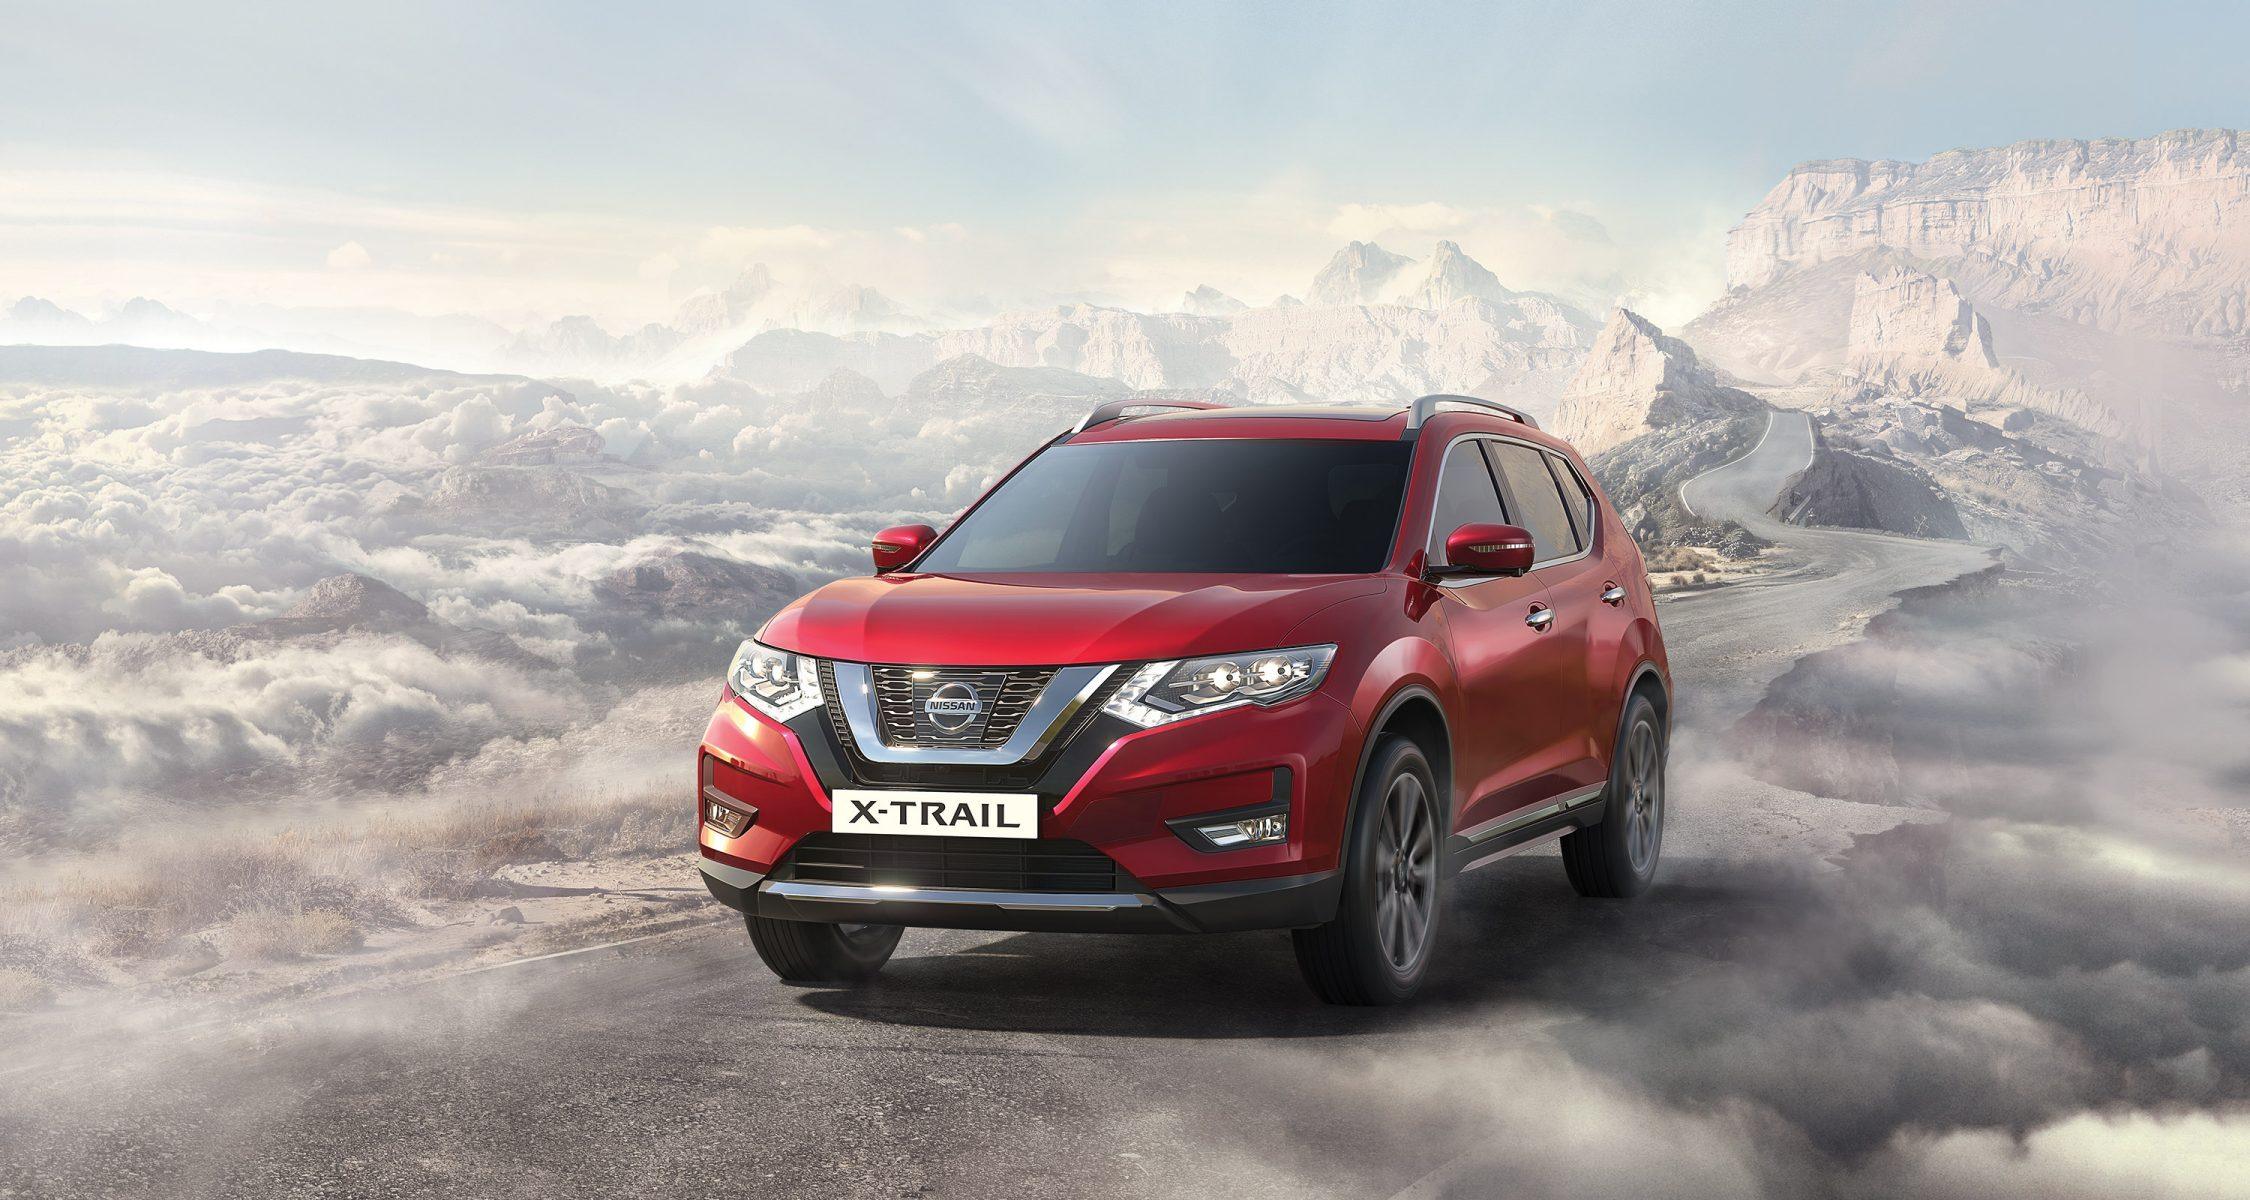 2018 NISSAN X-TRAIL driving on a mountain road